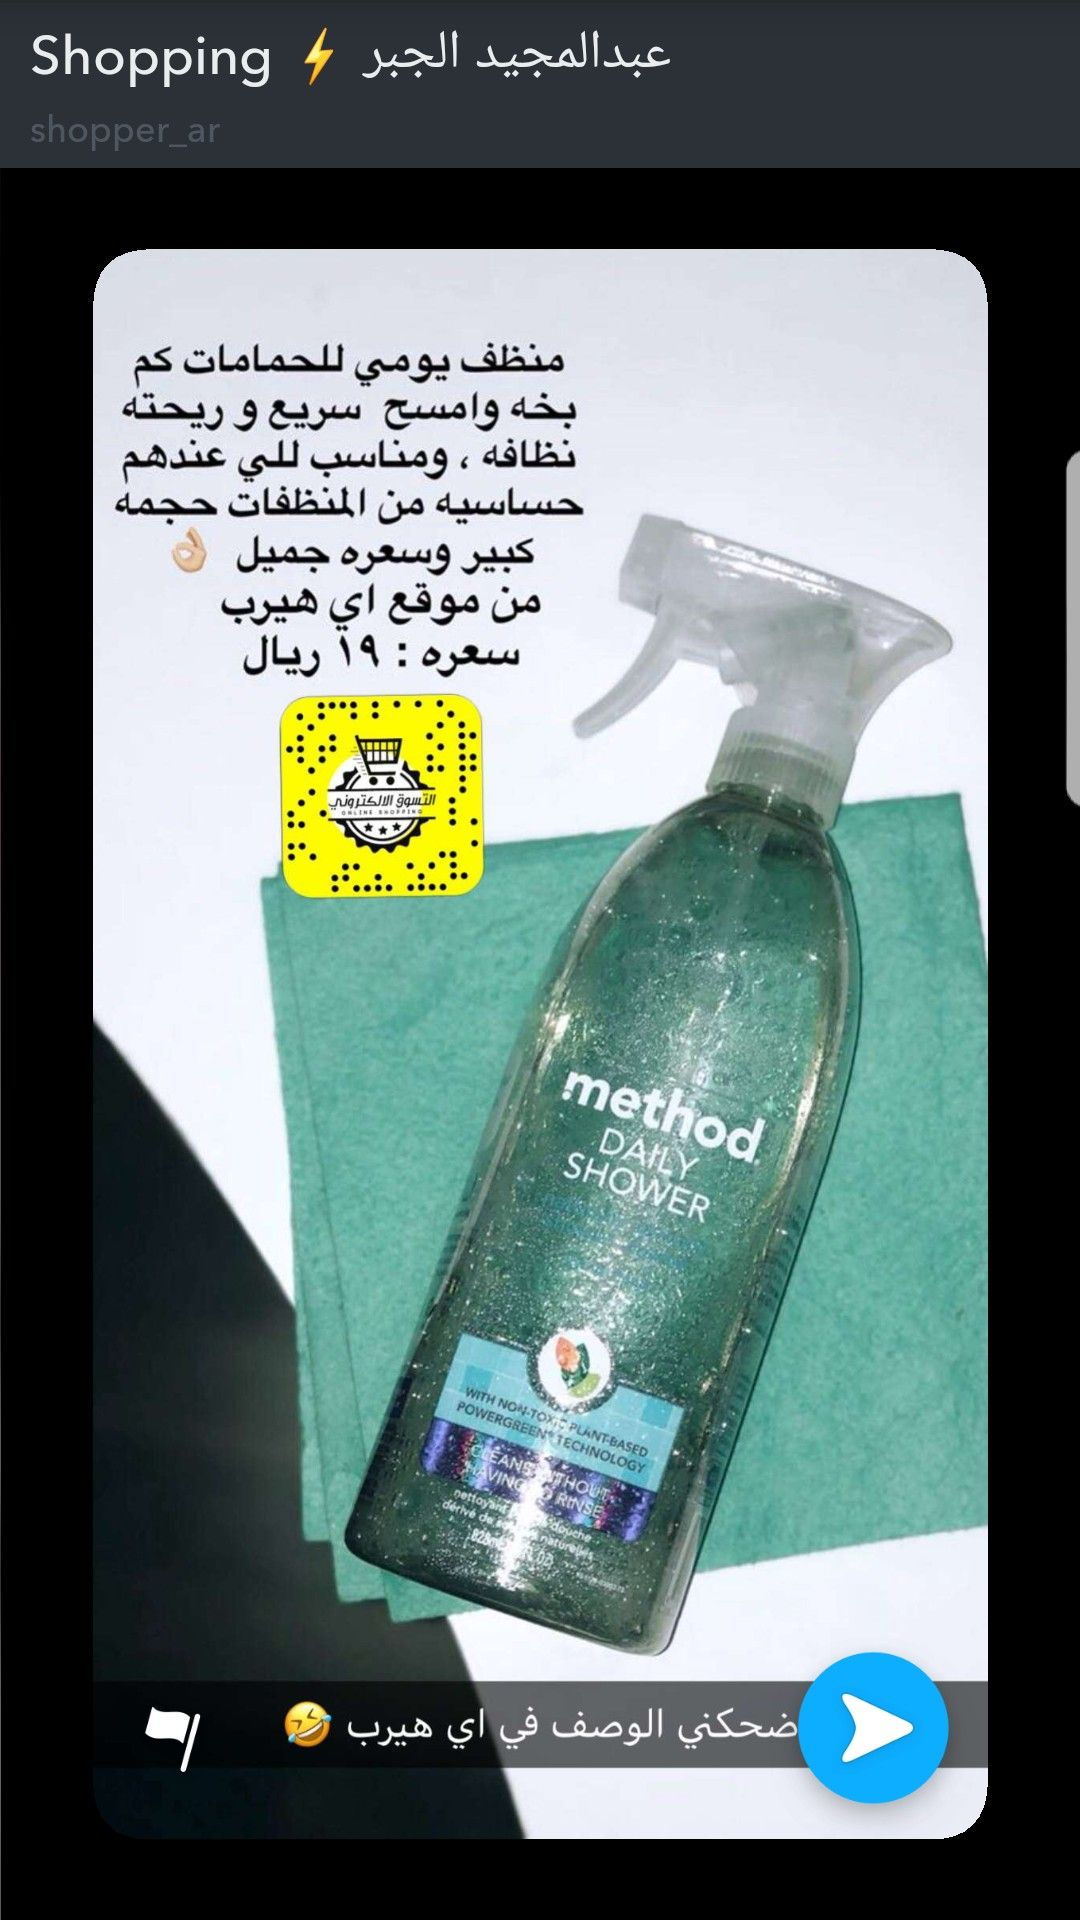 Pin By Arwa8008 Aa On منتجات روعة Diy Skin Care Recipes Diy Home Cleaning House Cleaning Tips